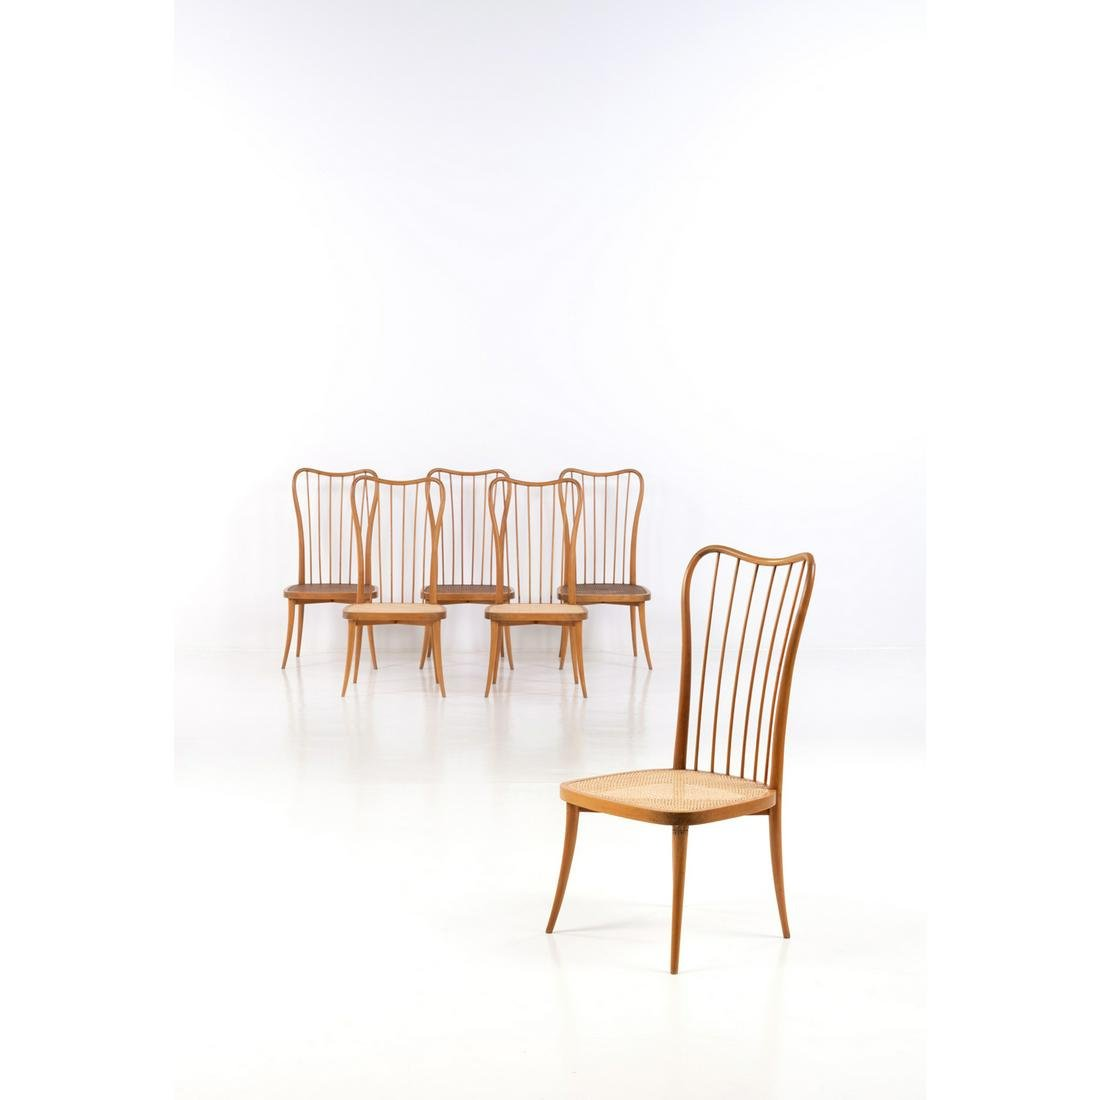 Joaquim Tenreiro (1906-1992) Set of six chairs Wood and